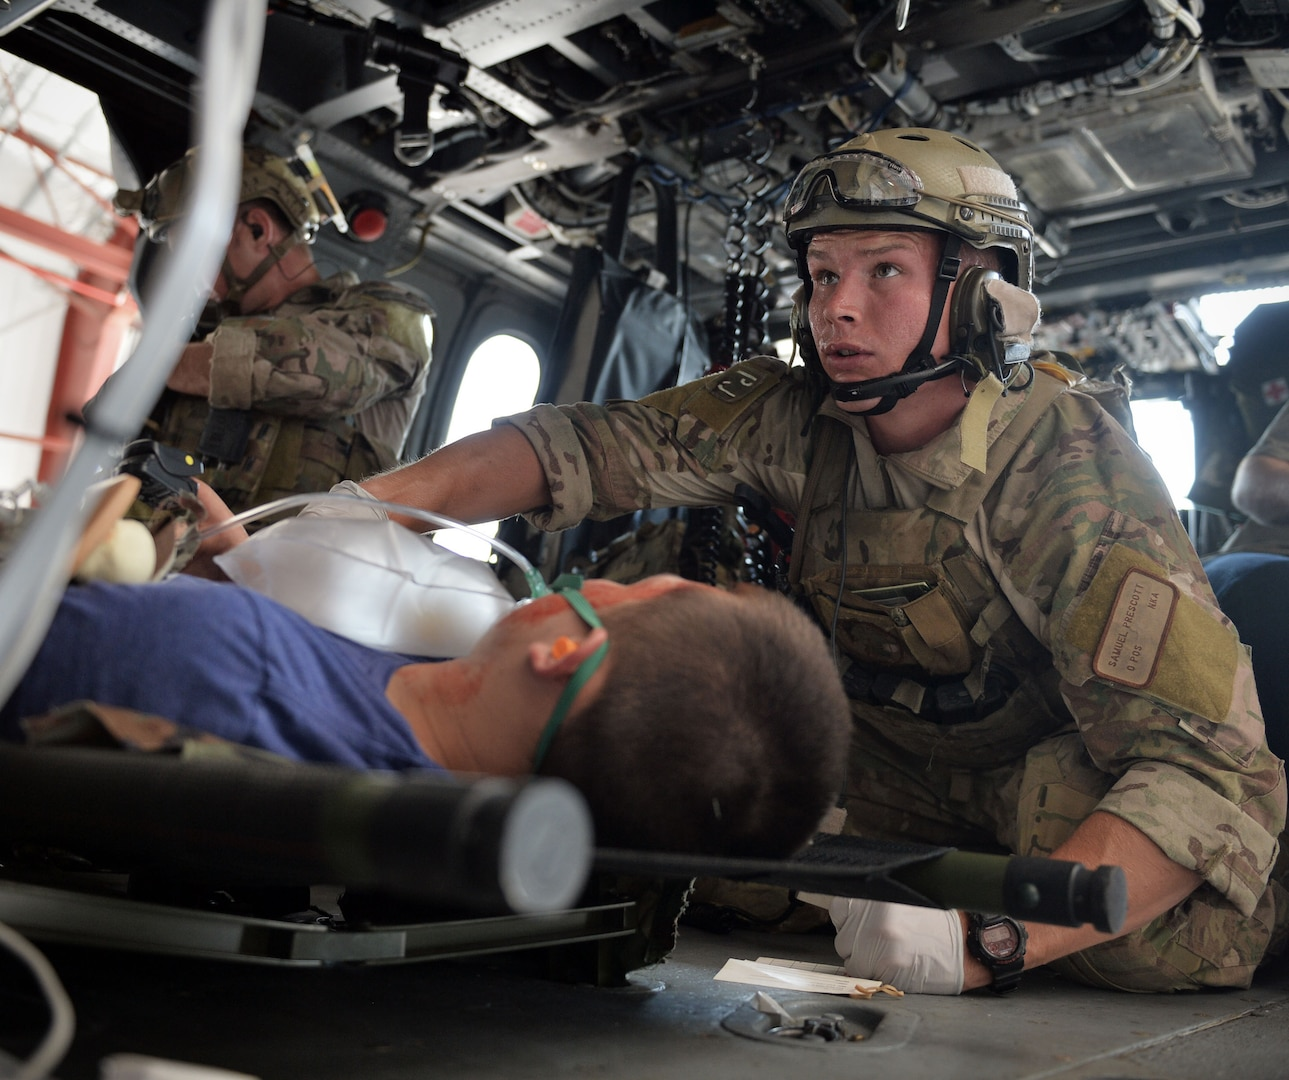 Airman Samual Prescott, a pararescue jumper assigned to the New York Air National Guard's 103rd Rescue Squadron, an element of the 106th Rescue Wing, monitors a patient during a training exercise conducted at F.S. Gabreski Air National Guard Base at Westhampton Beach, New York, on Aug. 25, 2015. The drills was conducted to help evaluate a casualty monitoring system being developed as part of the Air Force BATMAN program, which aims to put useful, wearable technology in the hands of Air Force war fighters.